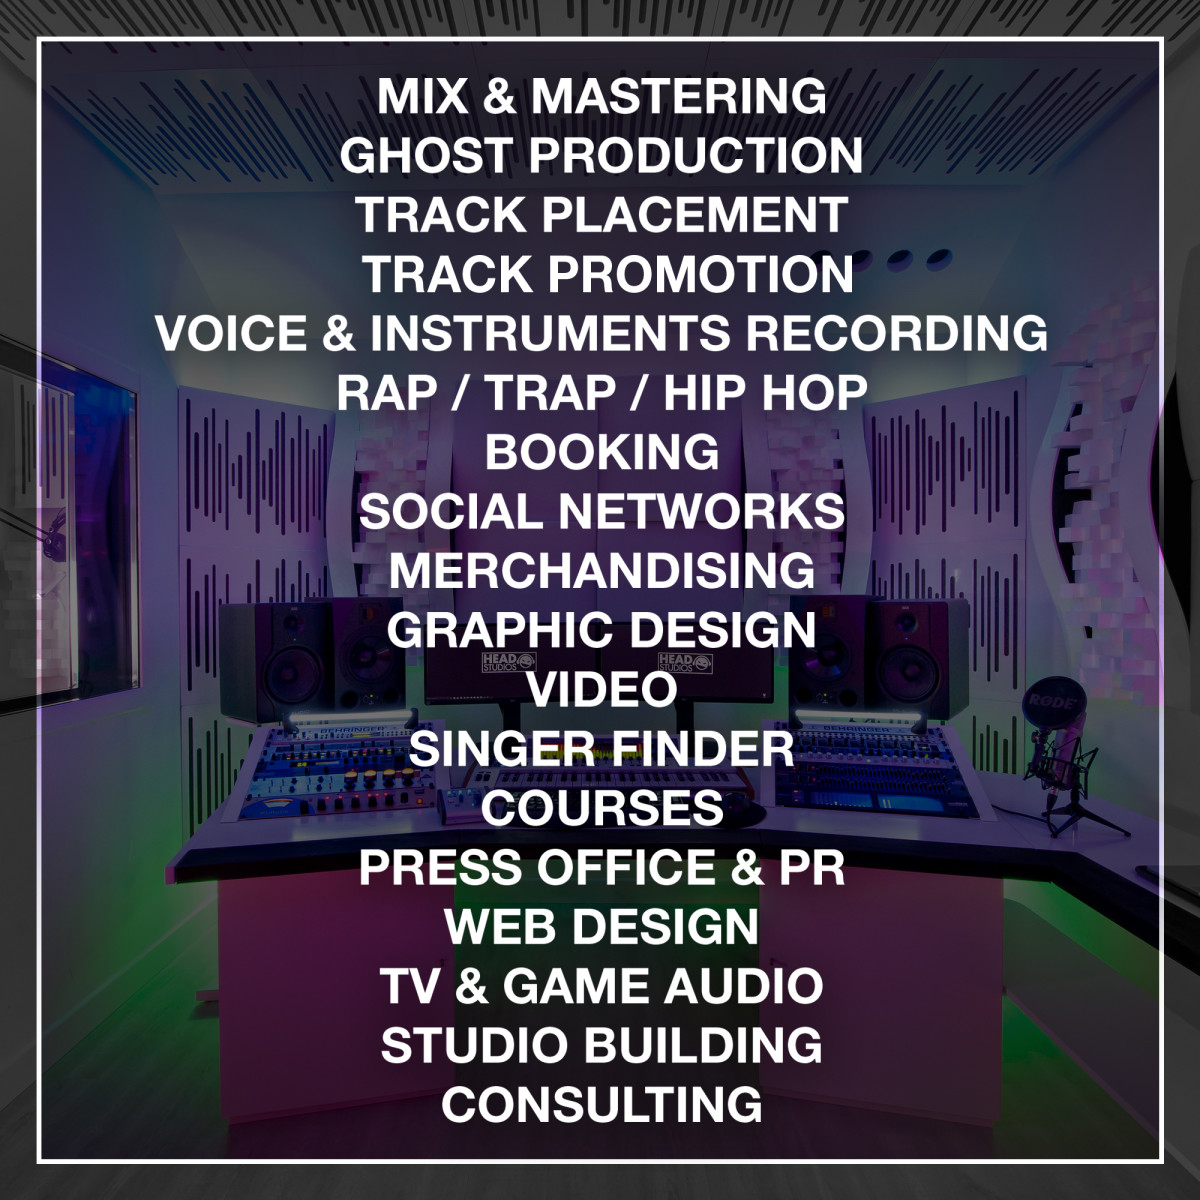 HEAD STUDIOS / Luca Testa - Service Offerings (Mix & Mastering, Ghost Production, Track Placement) - EDM.com Feature